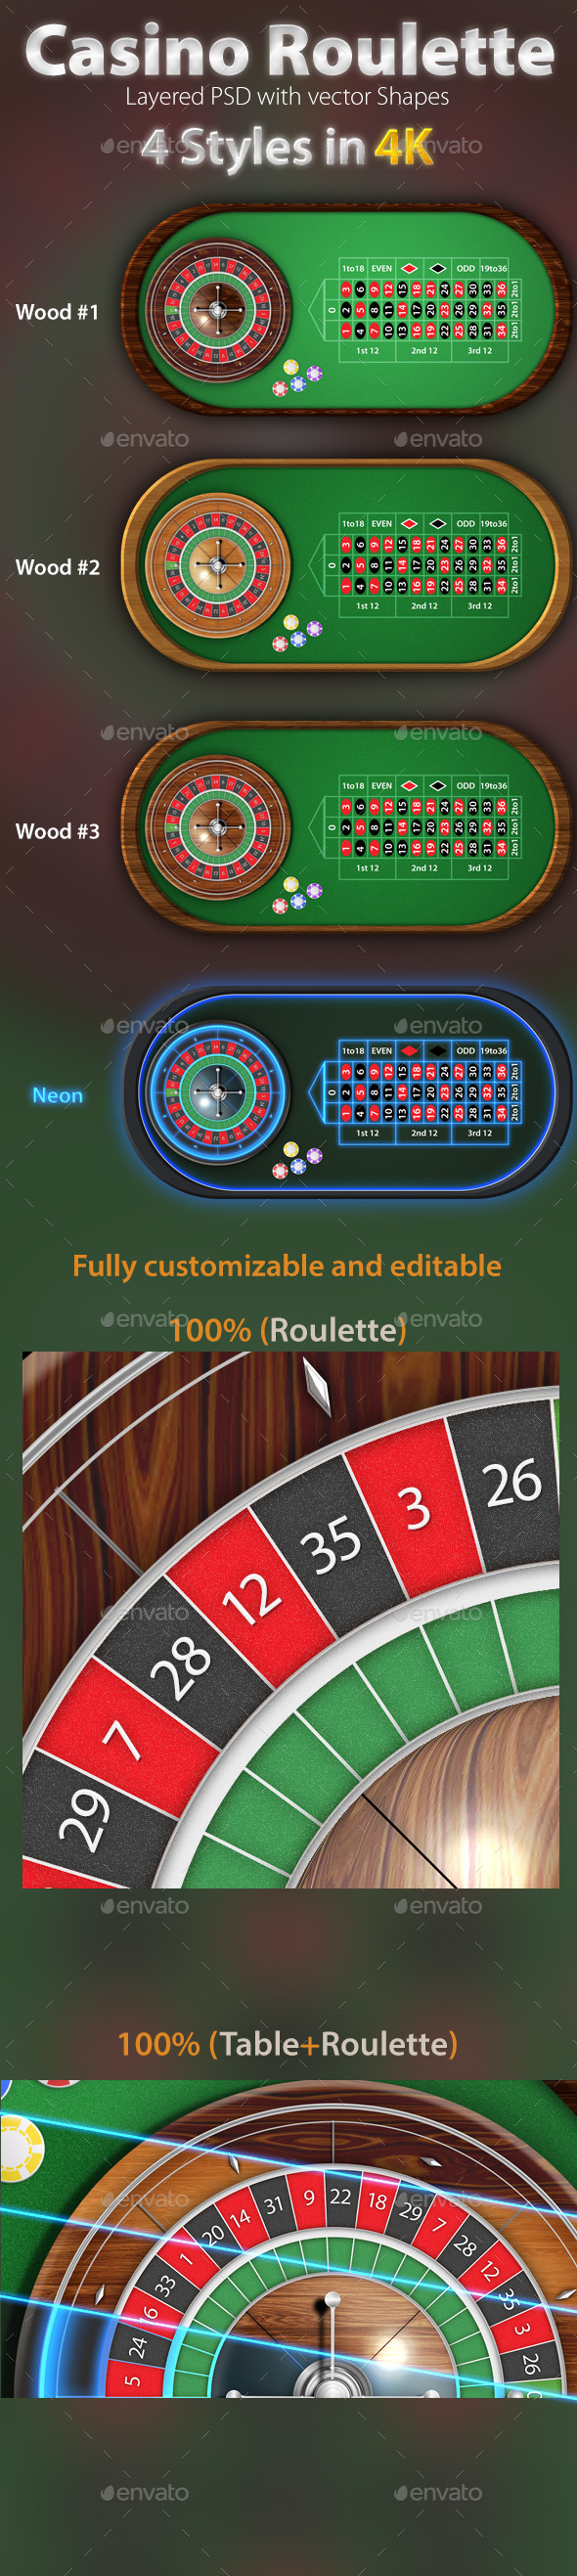 Graphicriver European Roulette Table Pack 4K 19267863